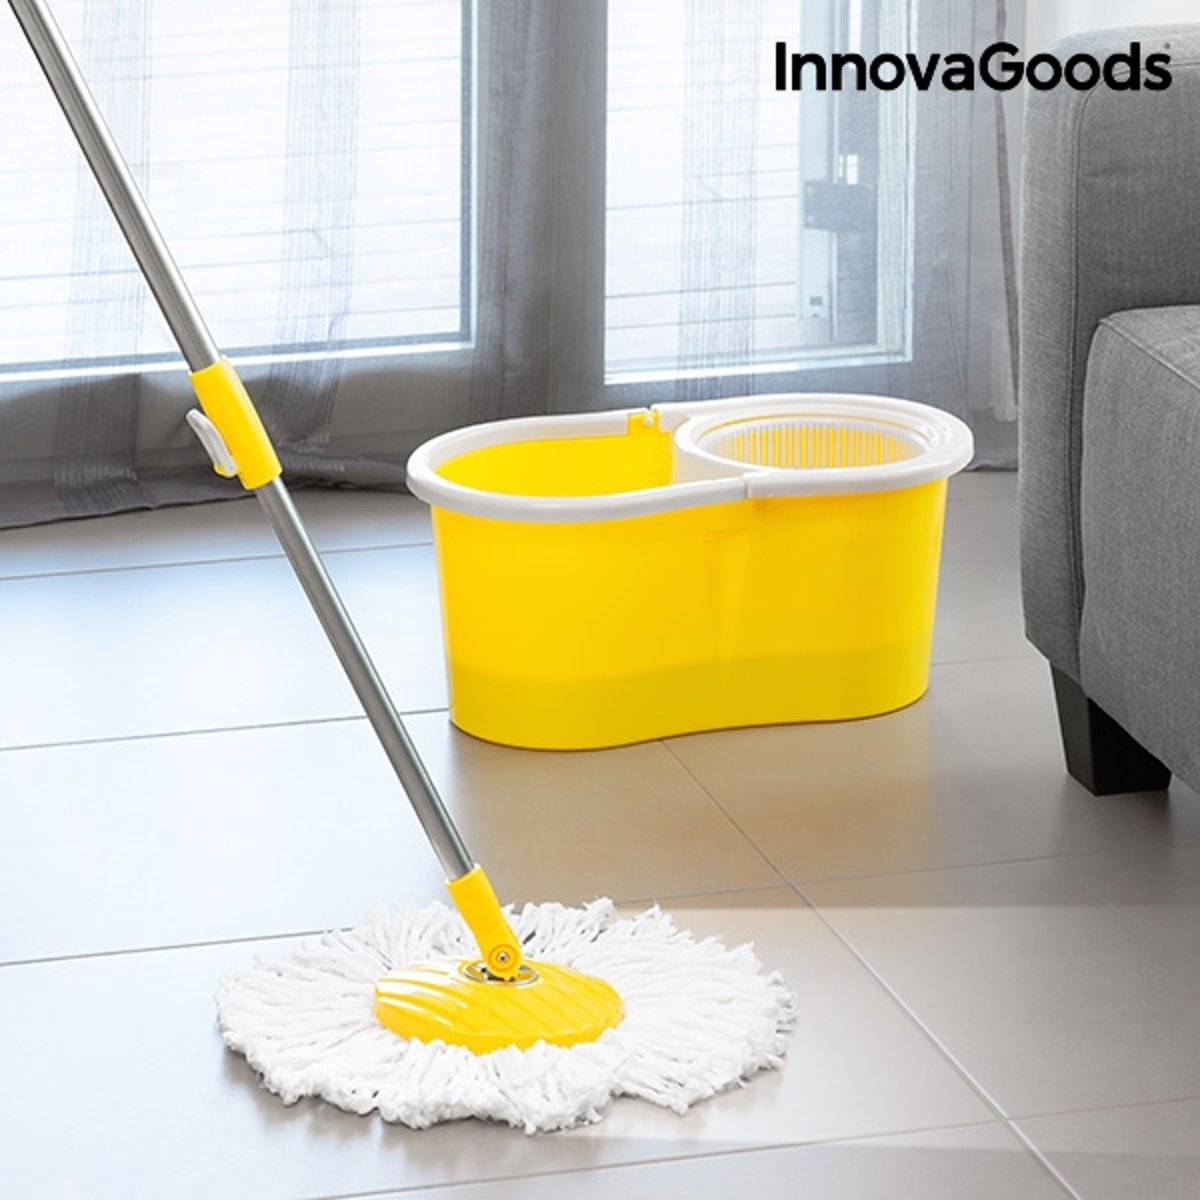 InnovaGoods Double Action Rotating Mop with Bucket kopen